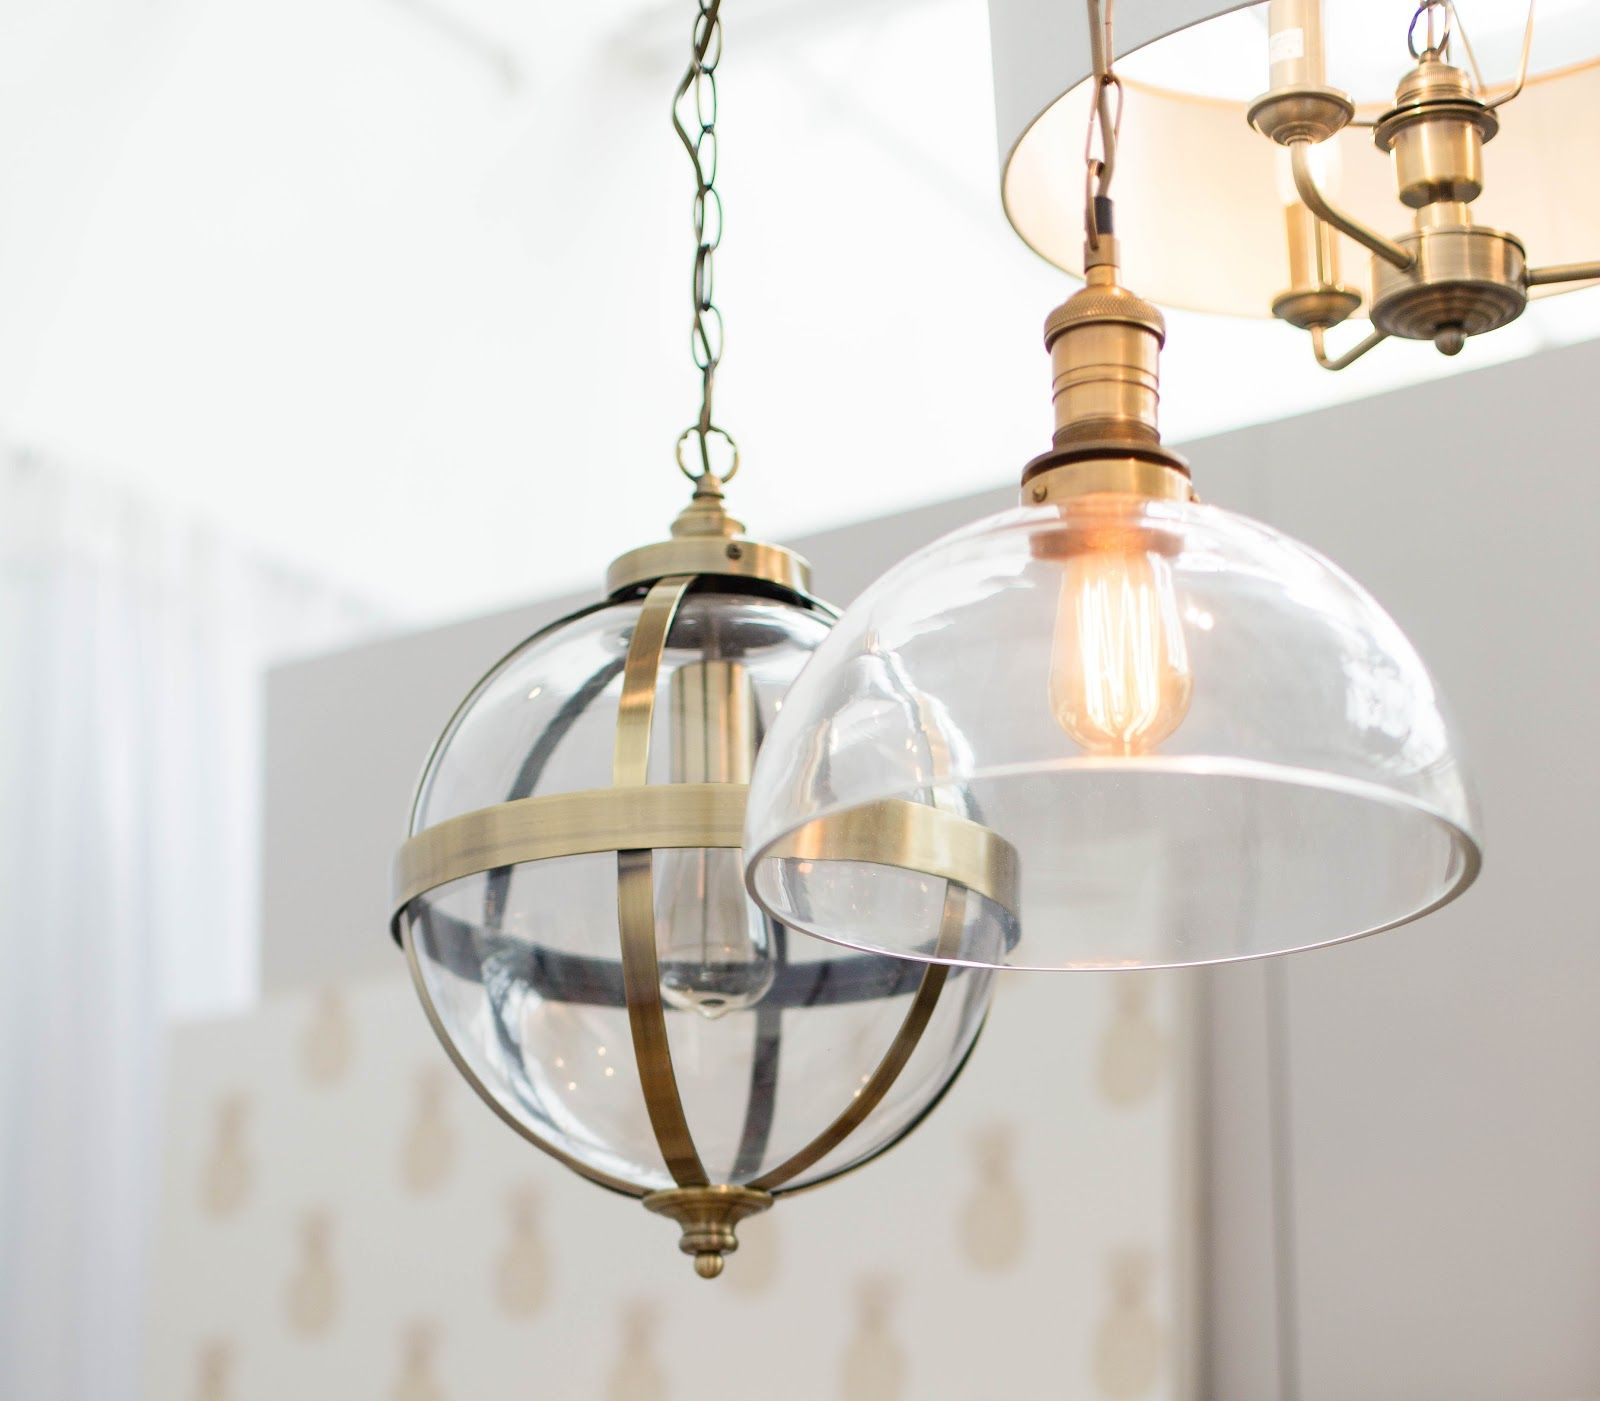 Industrial Chic Lighting Laura Ashley Press Show Aw16 Industrial Lighting Chic